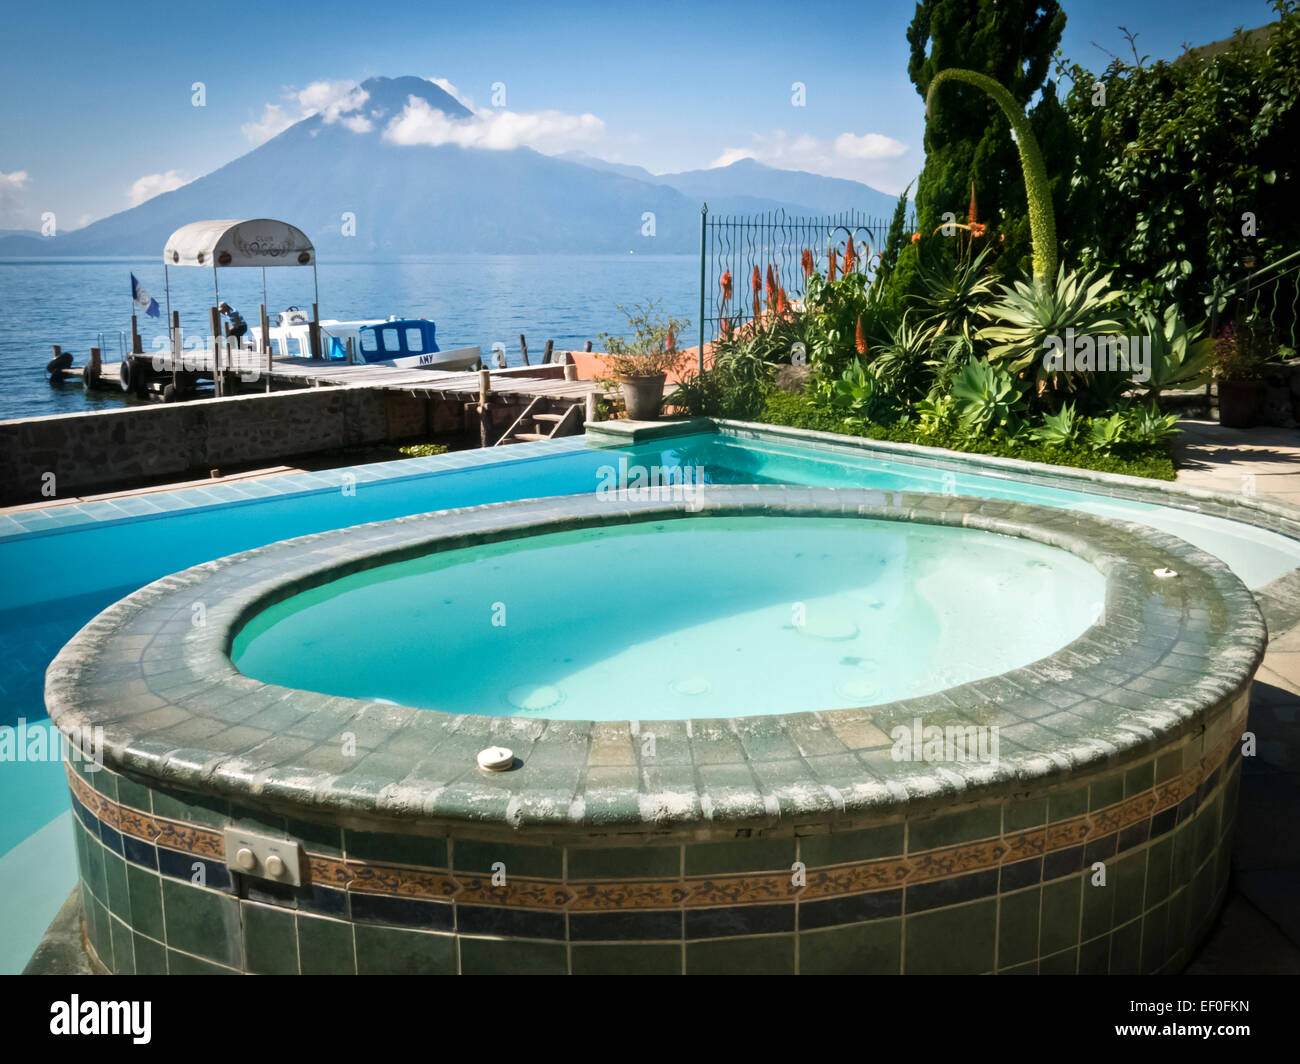 Pool And Jacuzzi Pool And Jacuzzi At Lake Atitlan In Guatemala Stock Photo